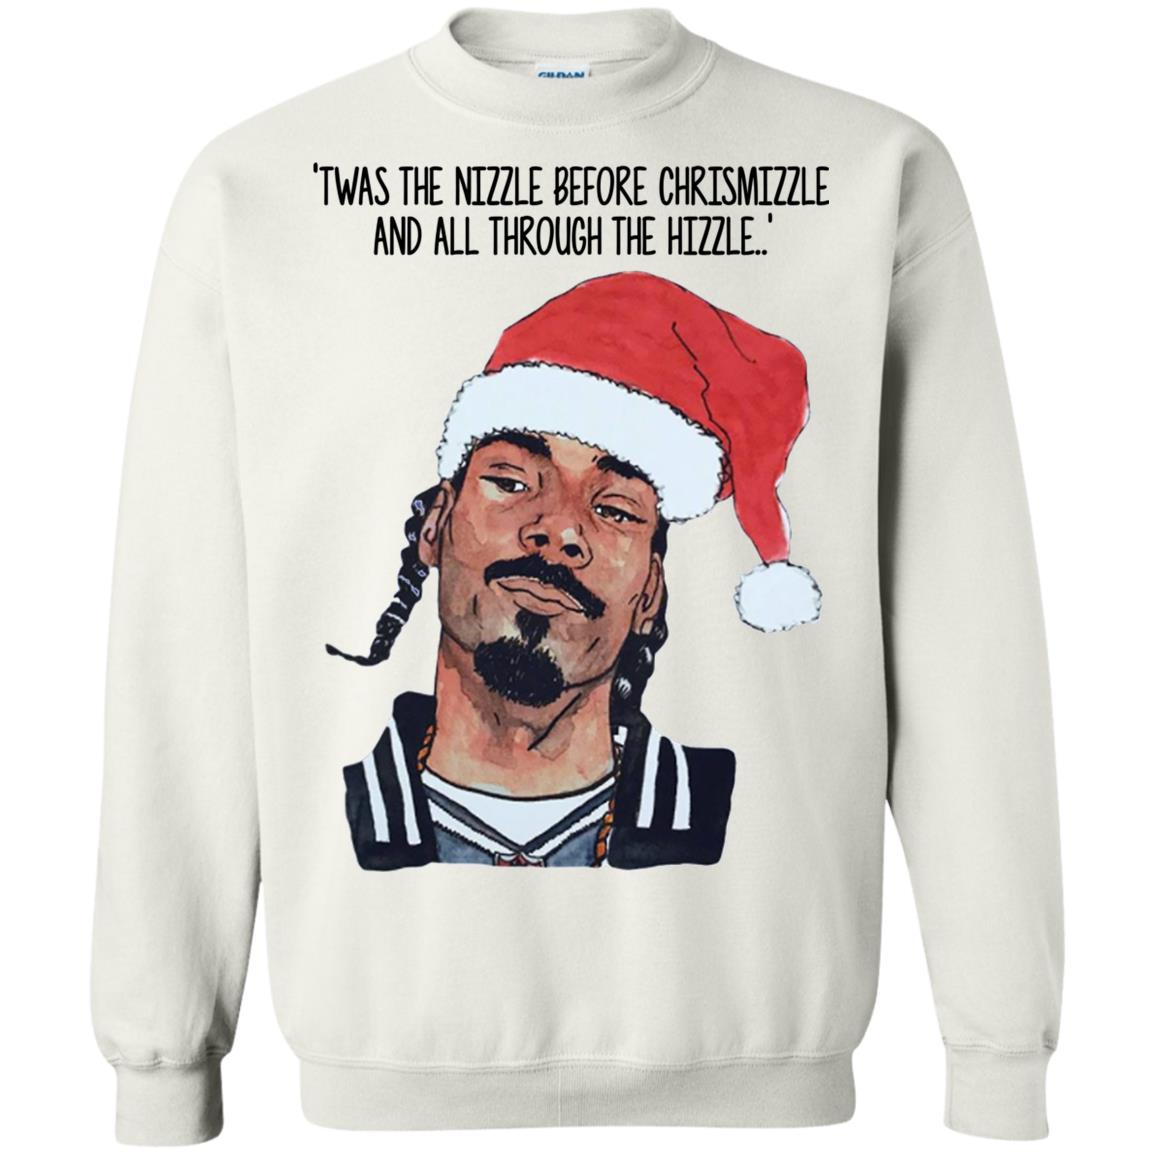 Snoop Dogg Twas the nizzle before Christmizzle